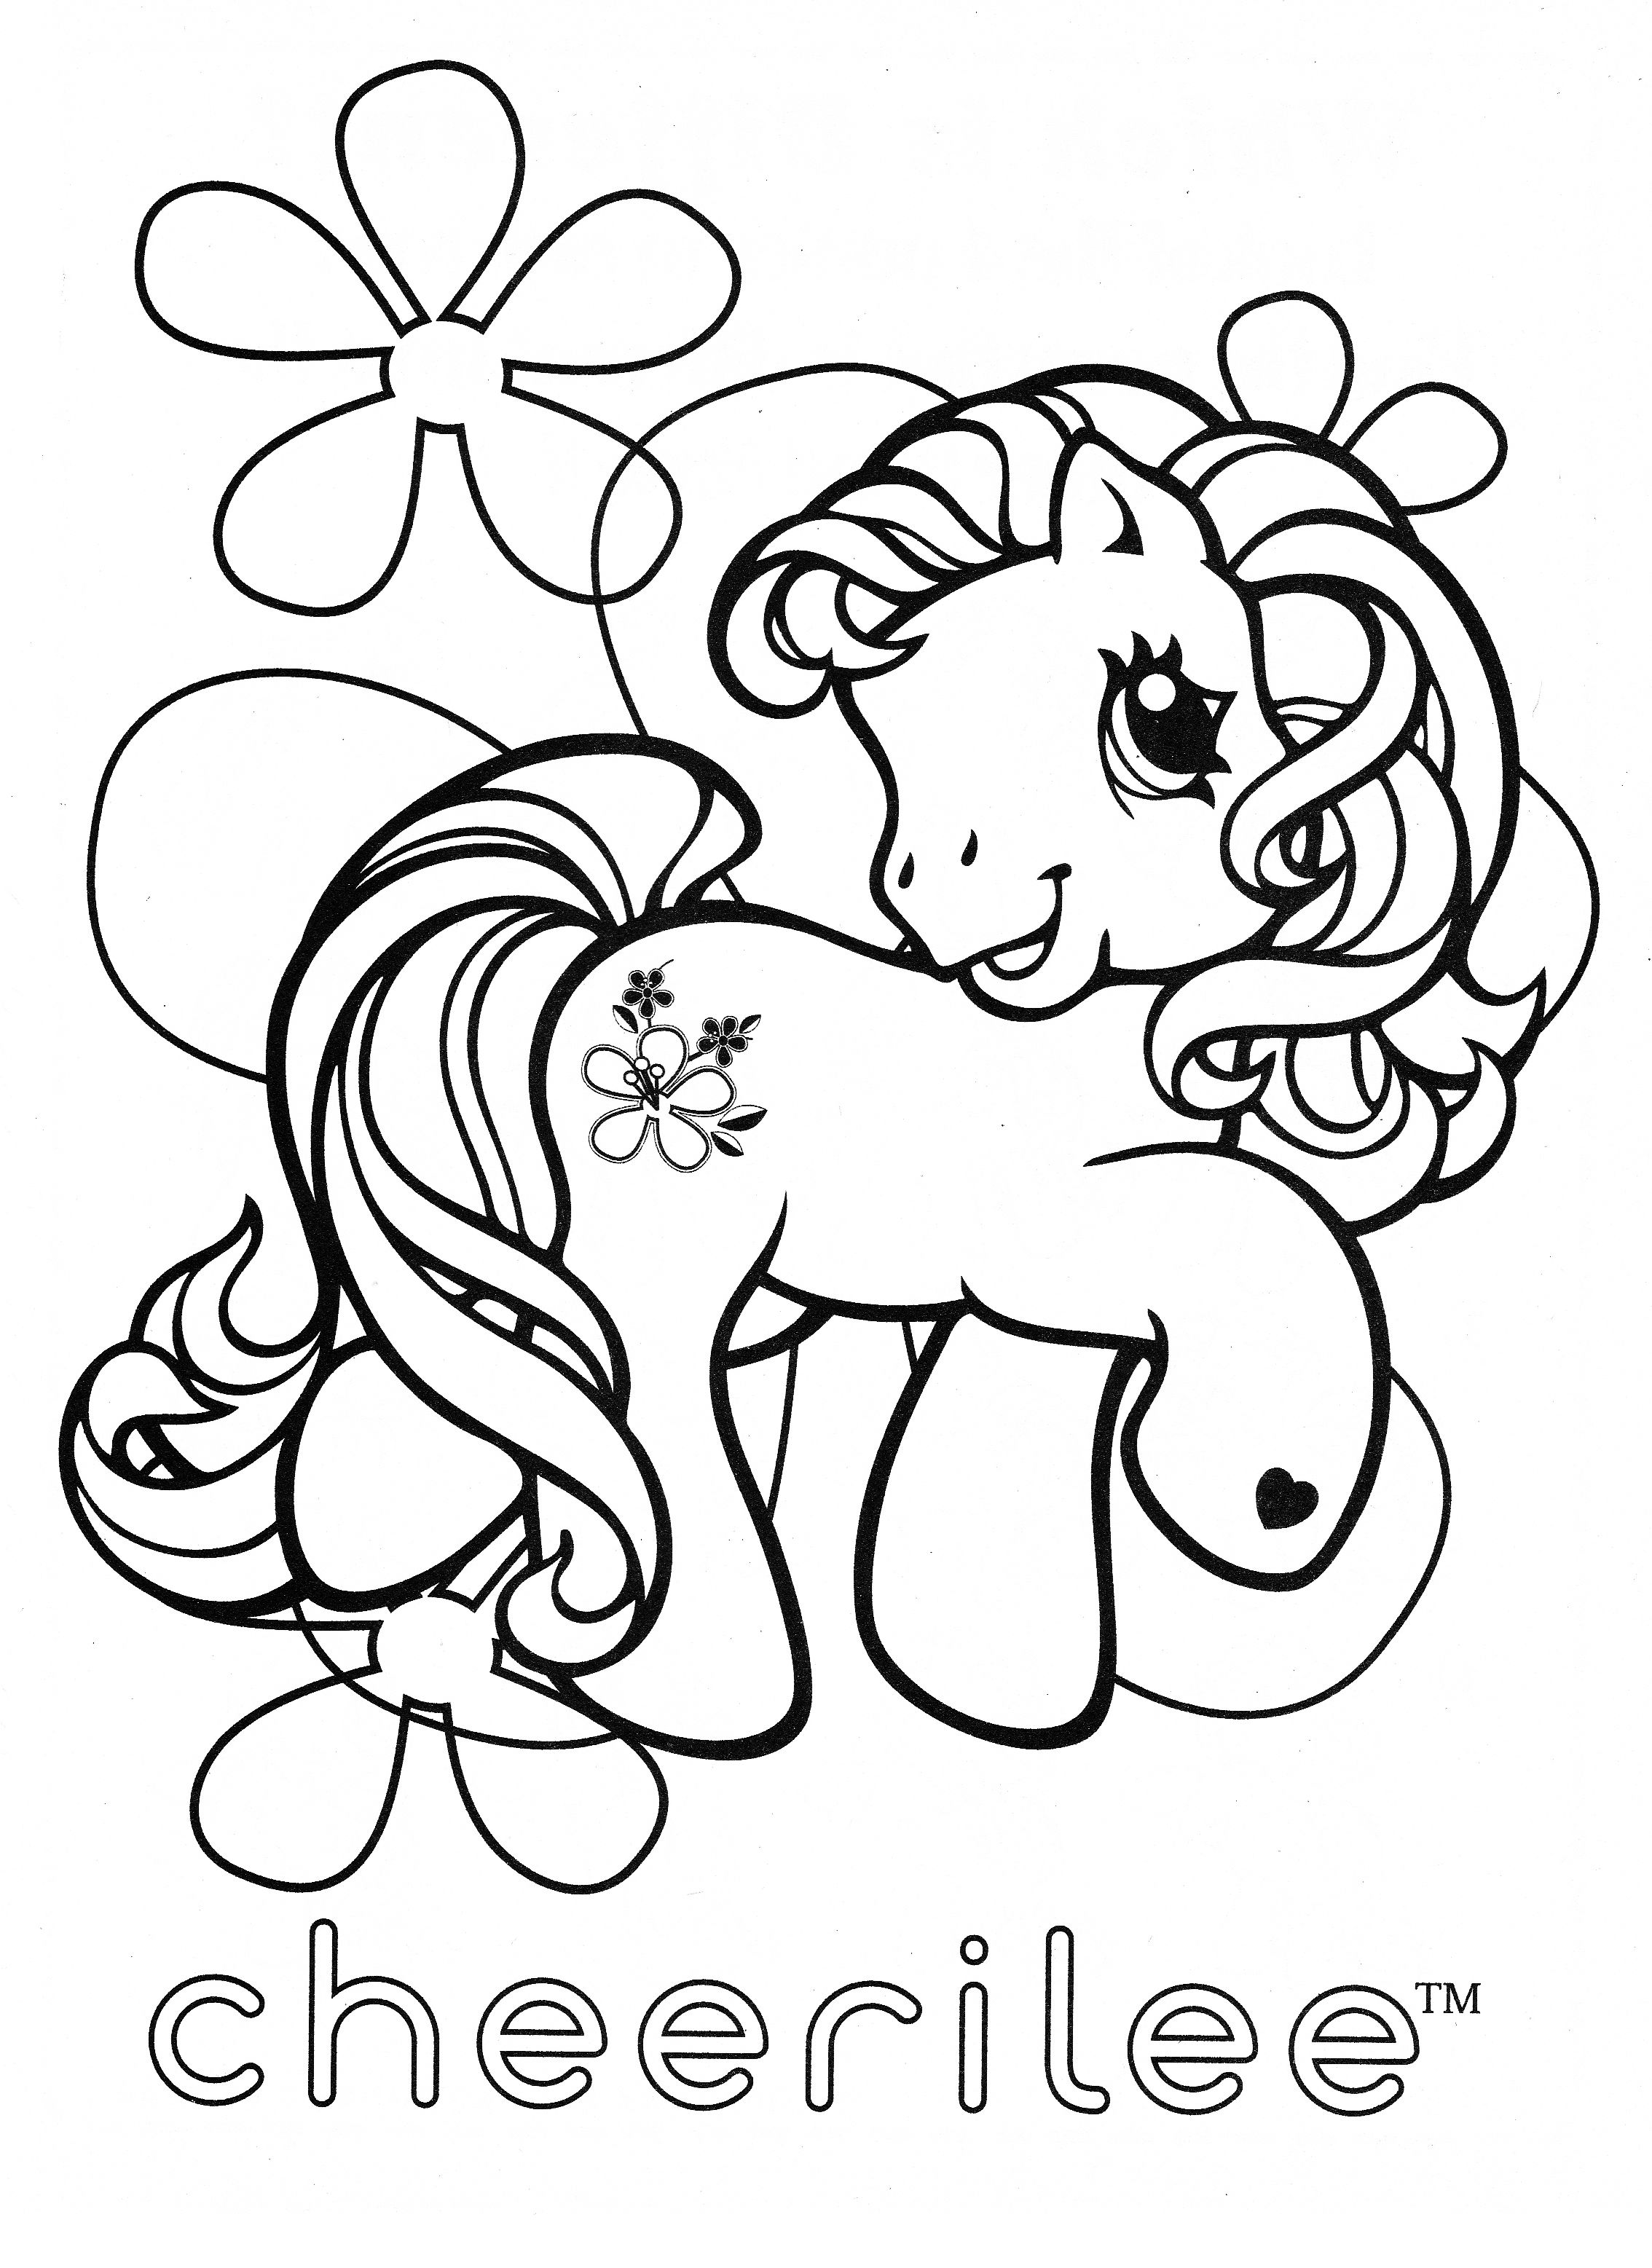 My Little Pony Coloring Page Mlp Cheerilee Cool Coloring Pages Crayola Coloring Pages Coloring Pages [ 3114 x 2268 Pixel ]